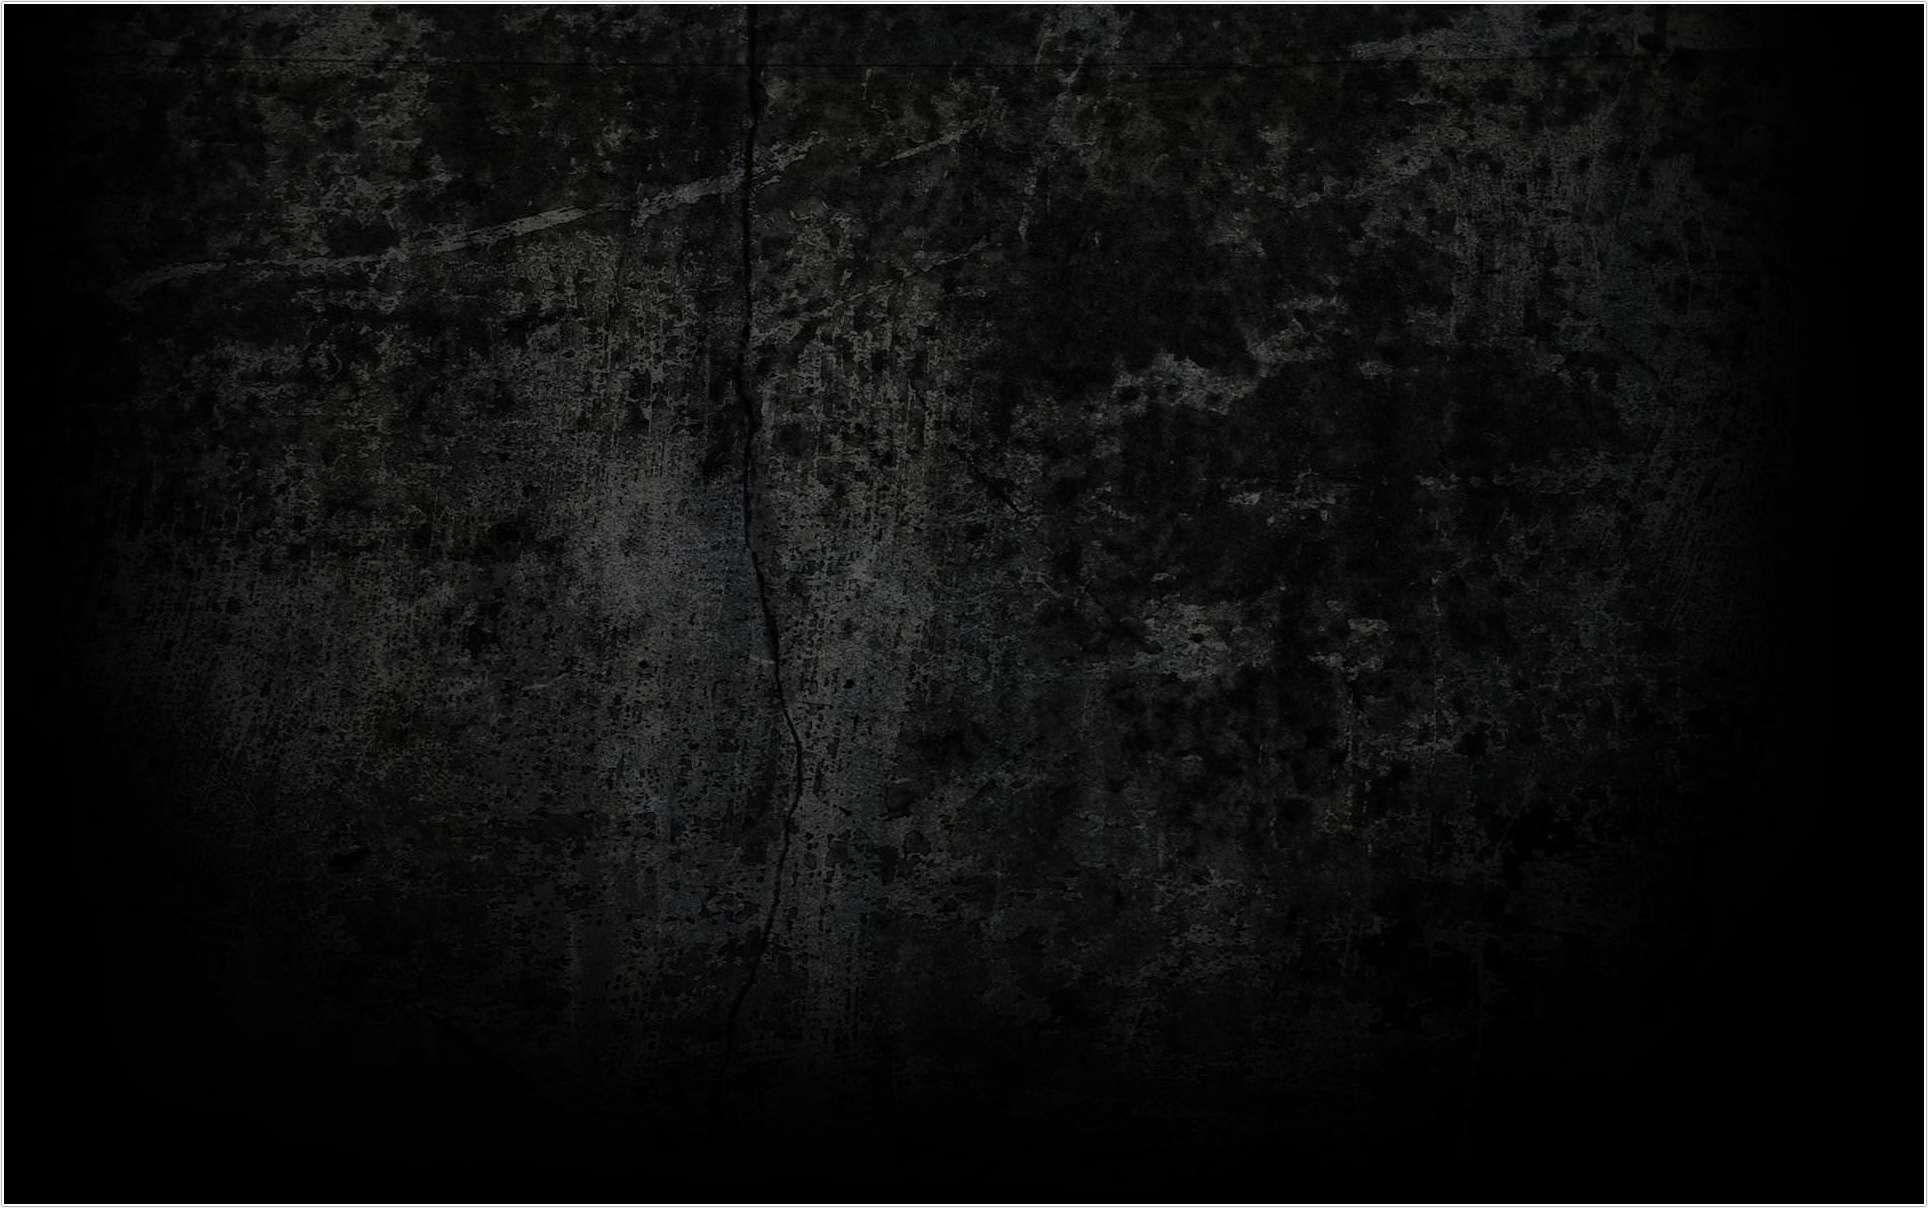 Black grunge wallpaper clipart images gallery for free